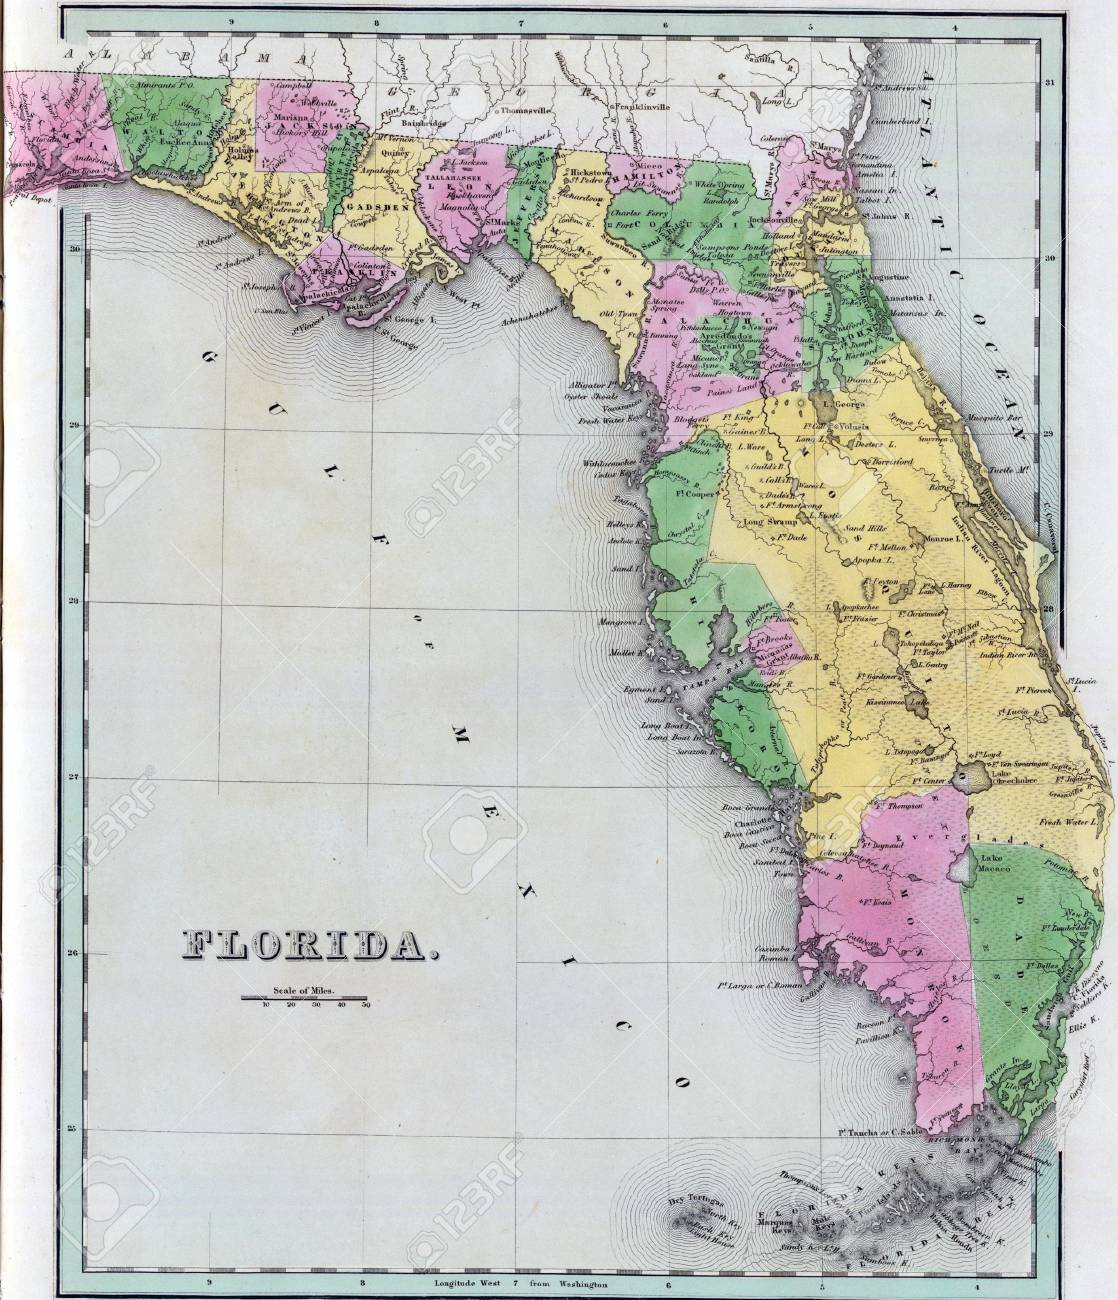 Antique Map Of Florida.Antique Map Of Florida From The Out Of Print 1841 Goodrich Atlas